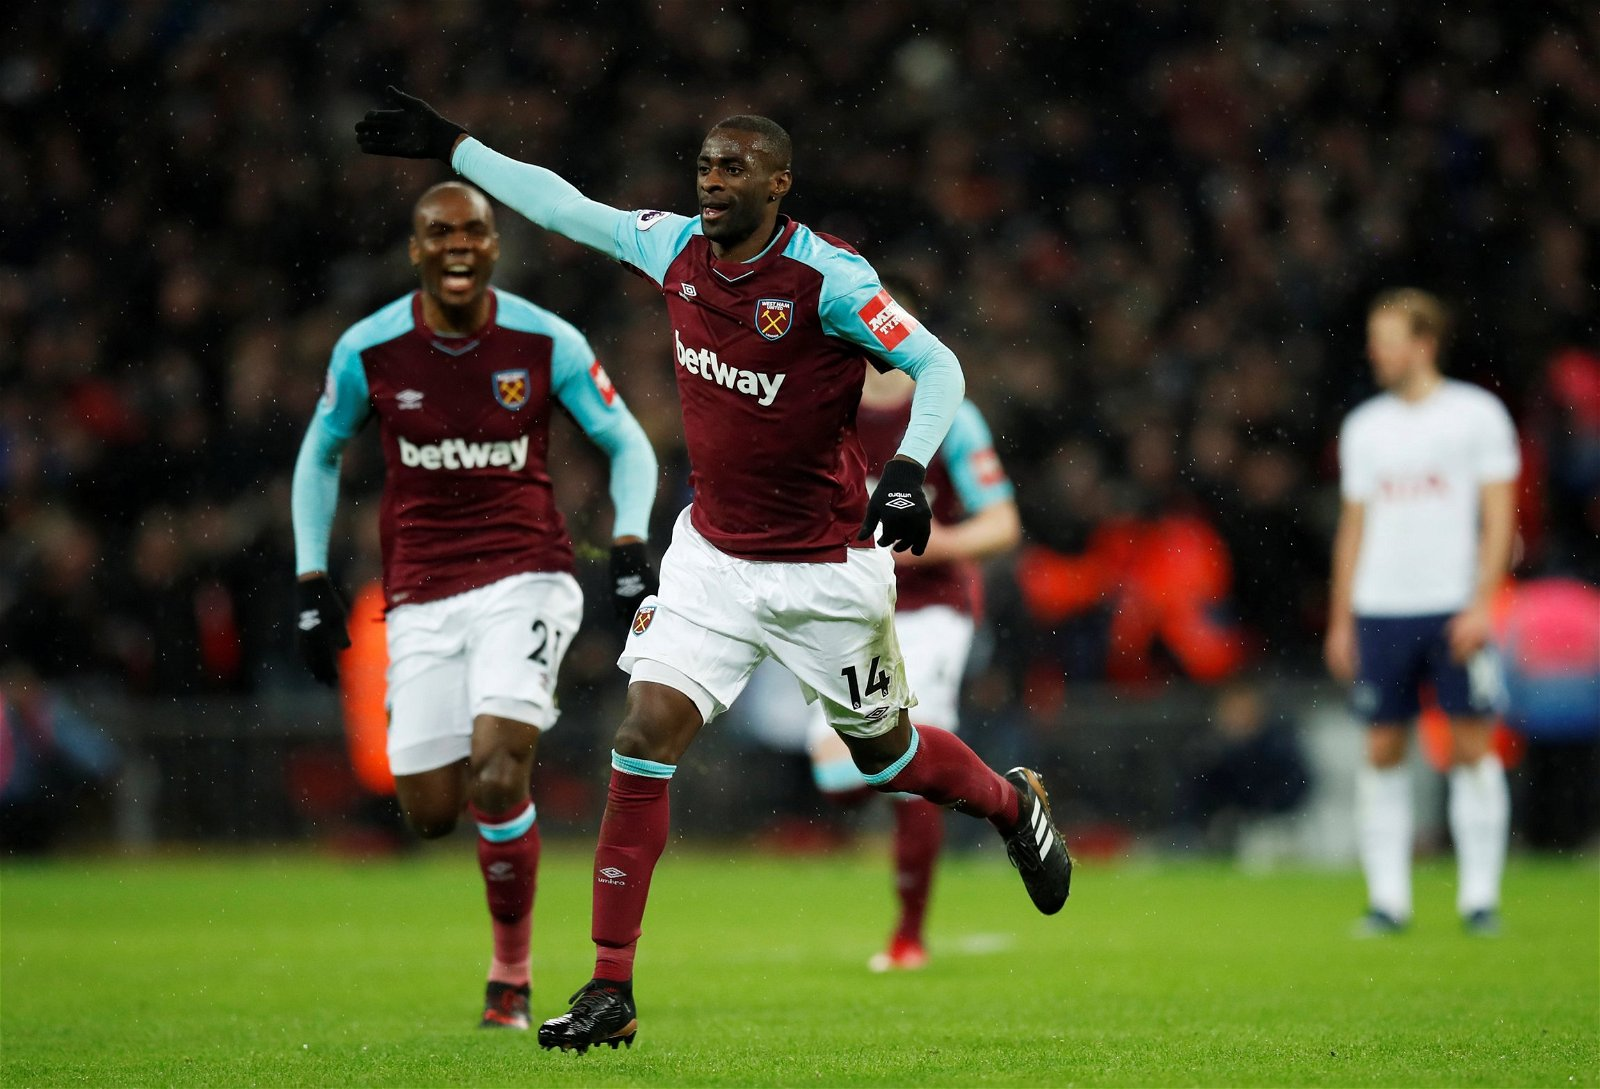 Pedro Obiang celebrates scoring against Tottenham